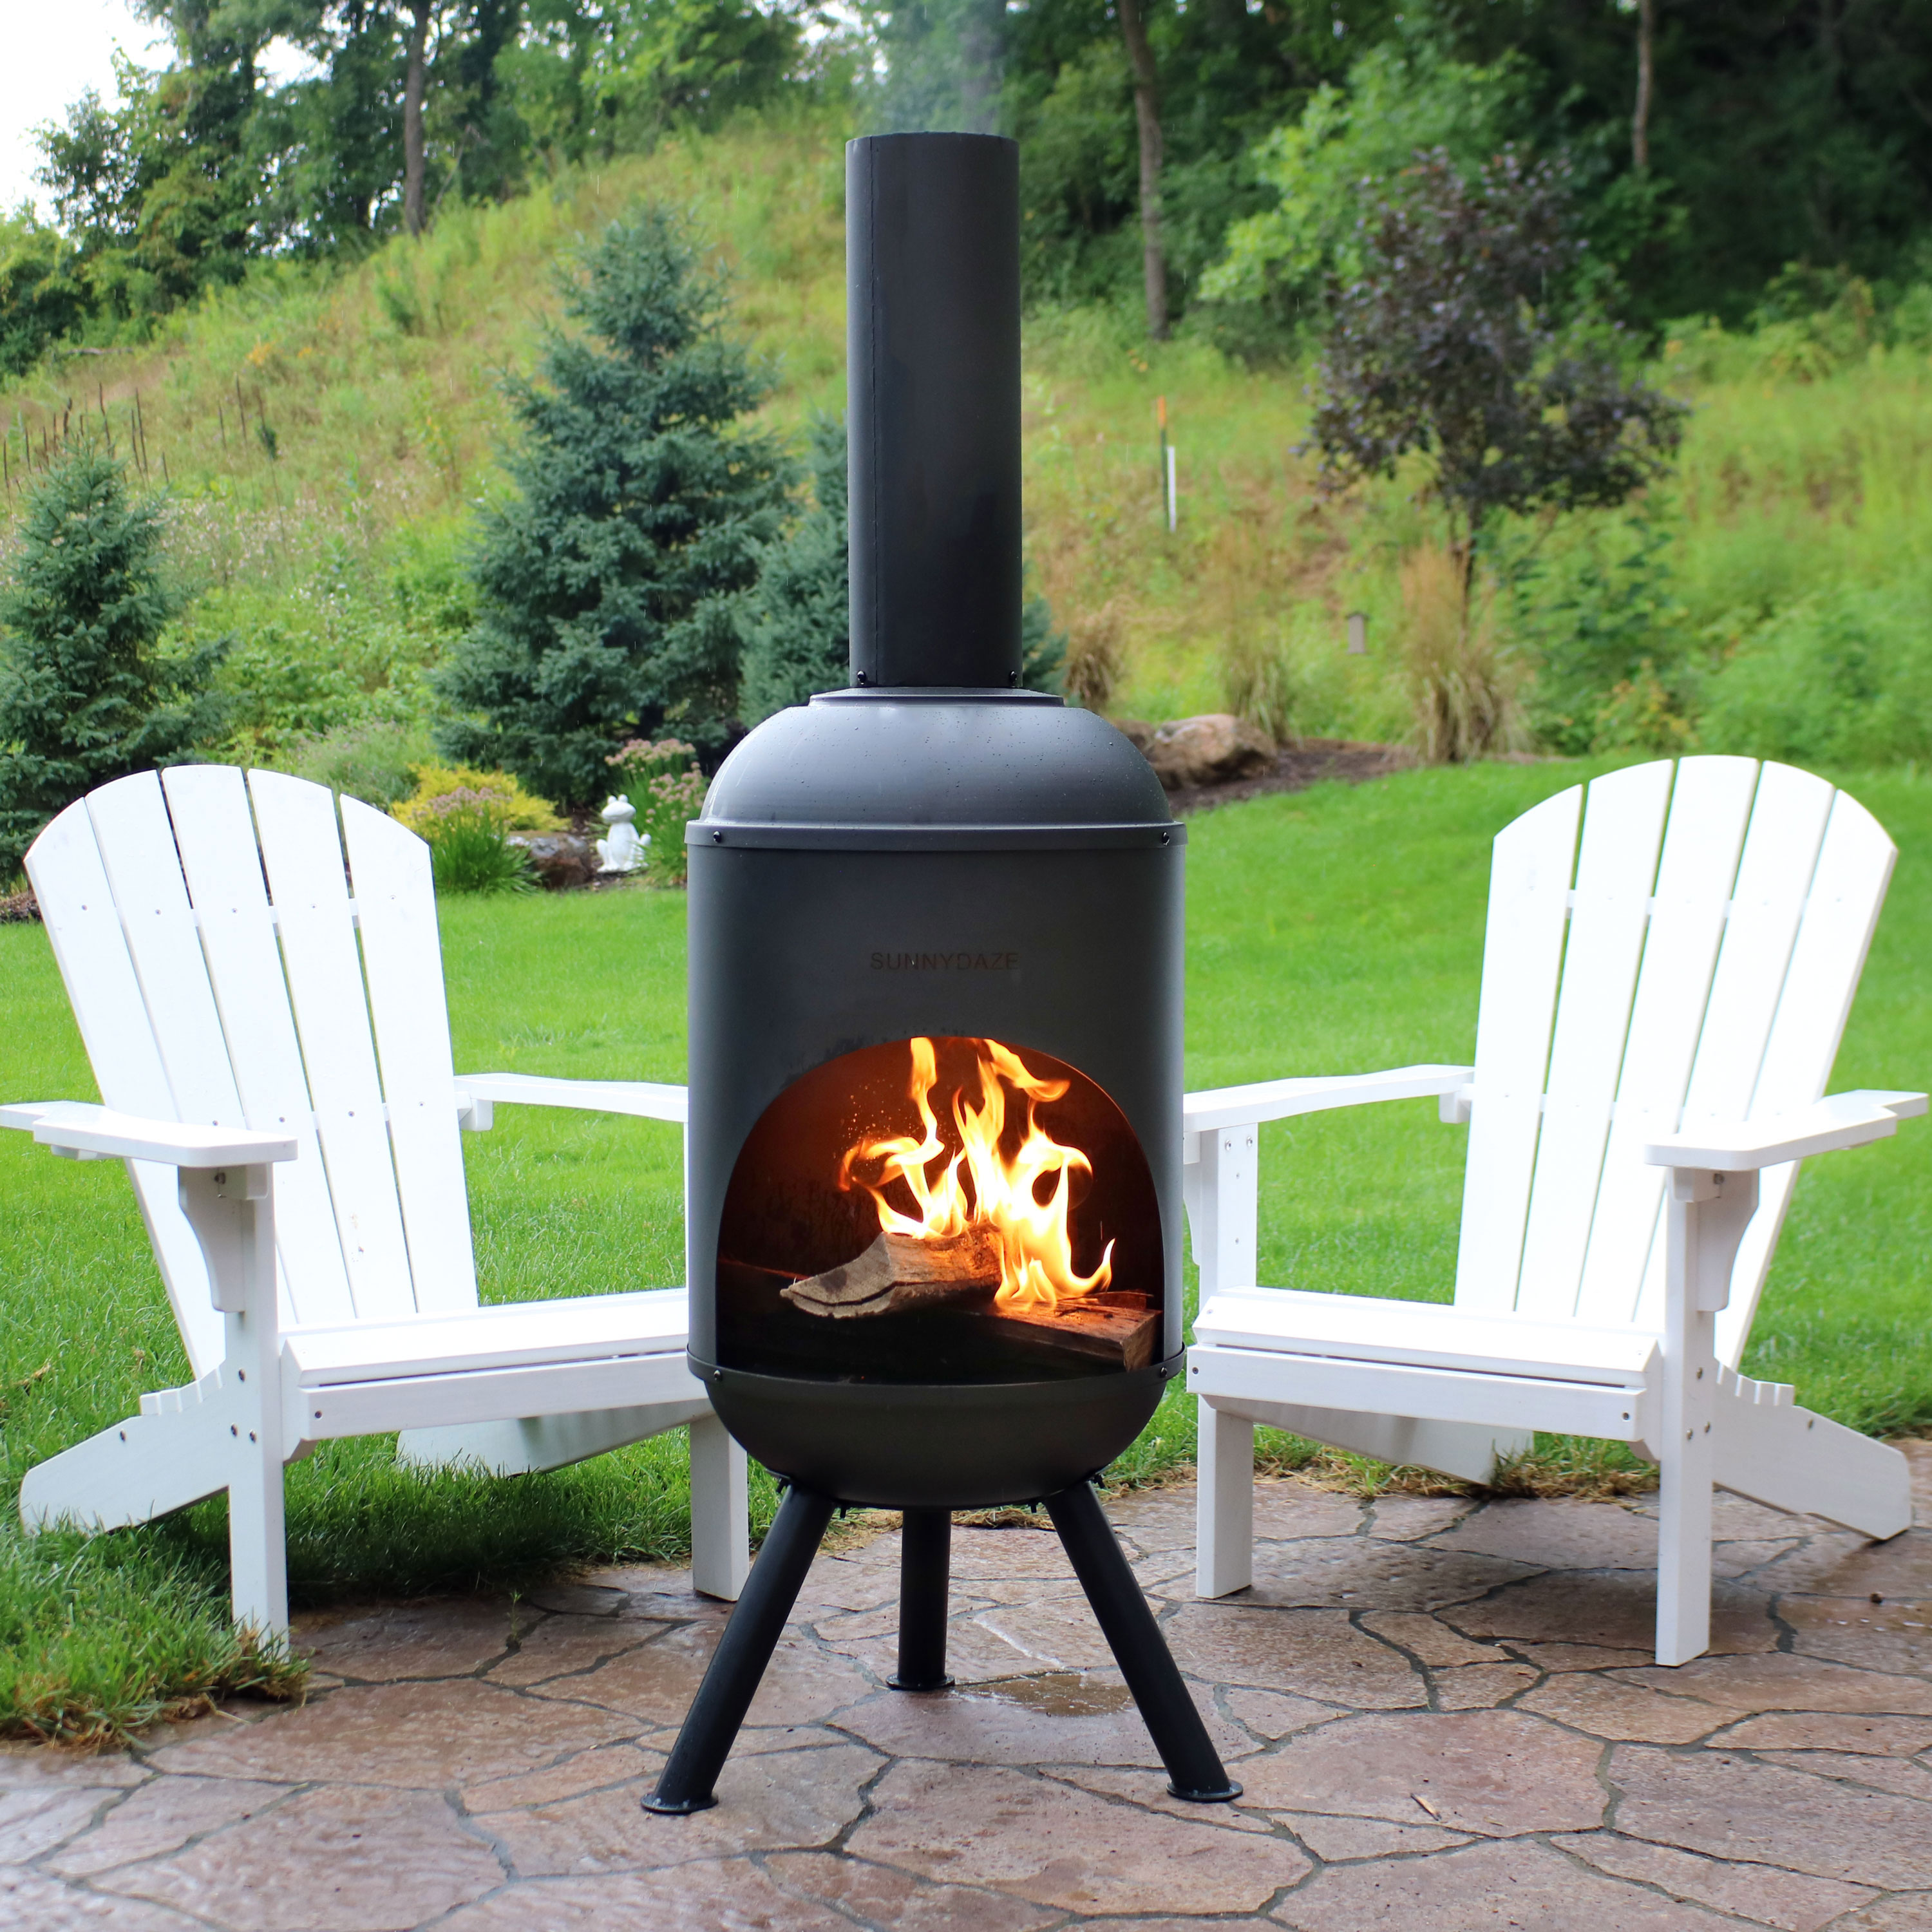 Sunnydaze Steel Outdoor Wood-Burning Chiminea Fire Pit, 5-Foot, Black